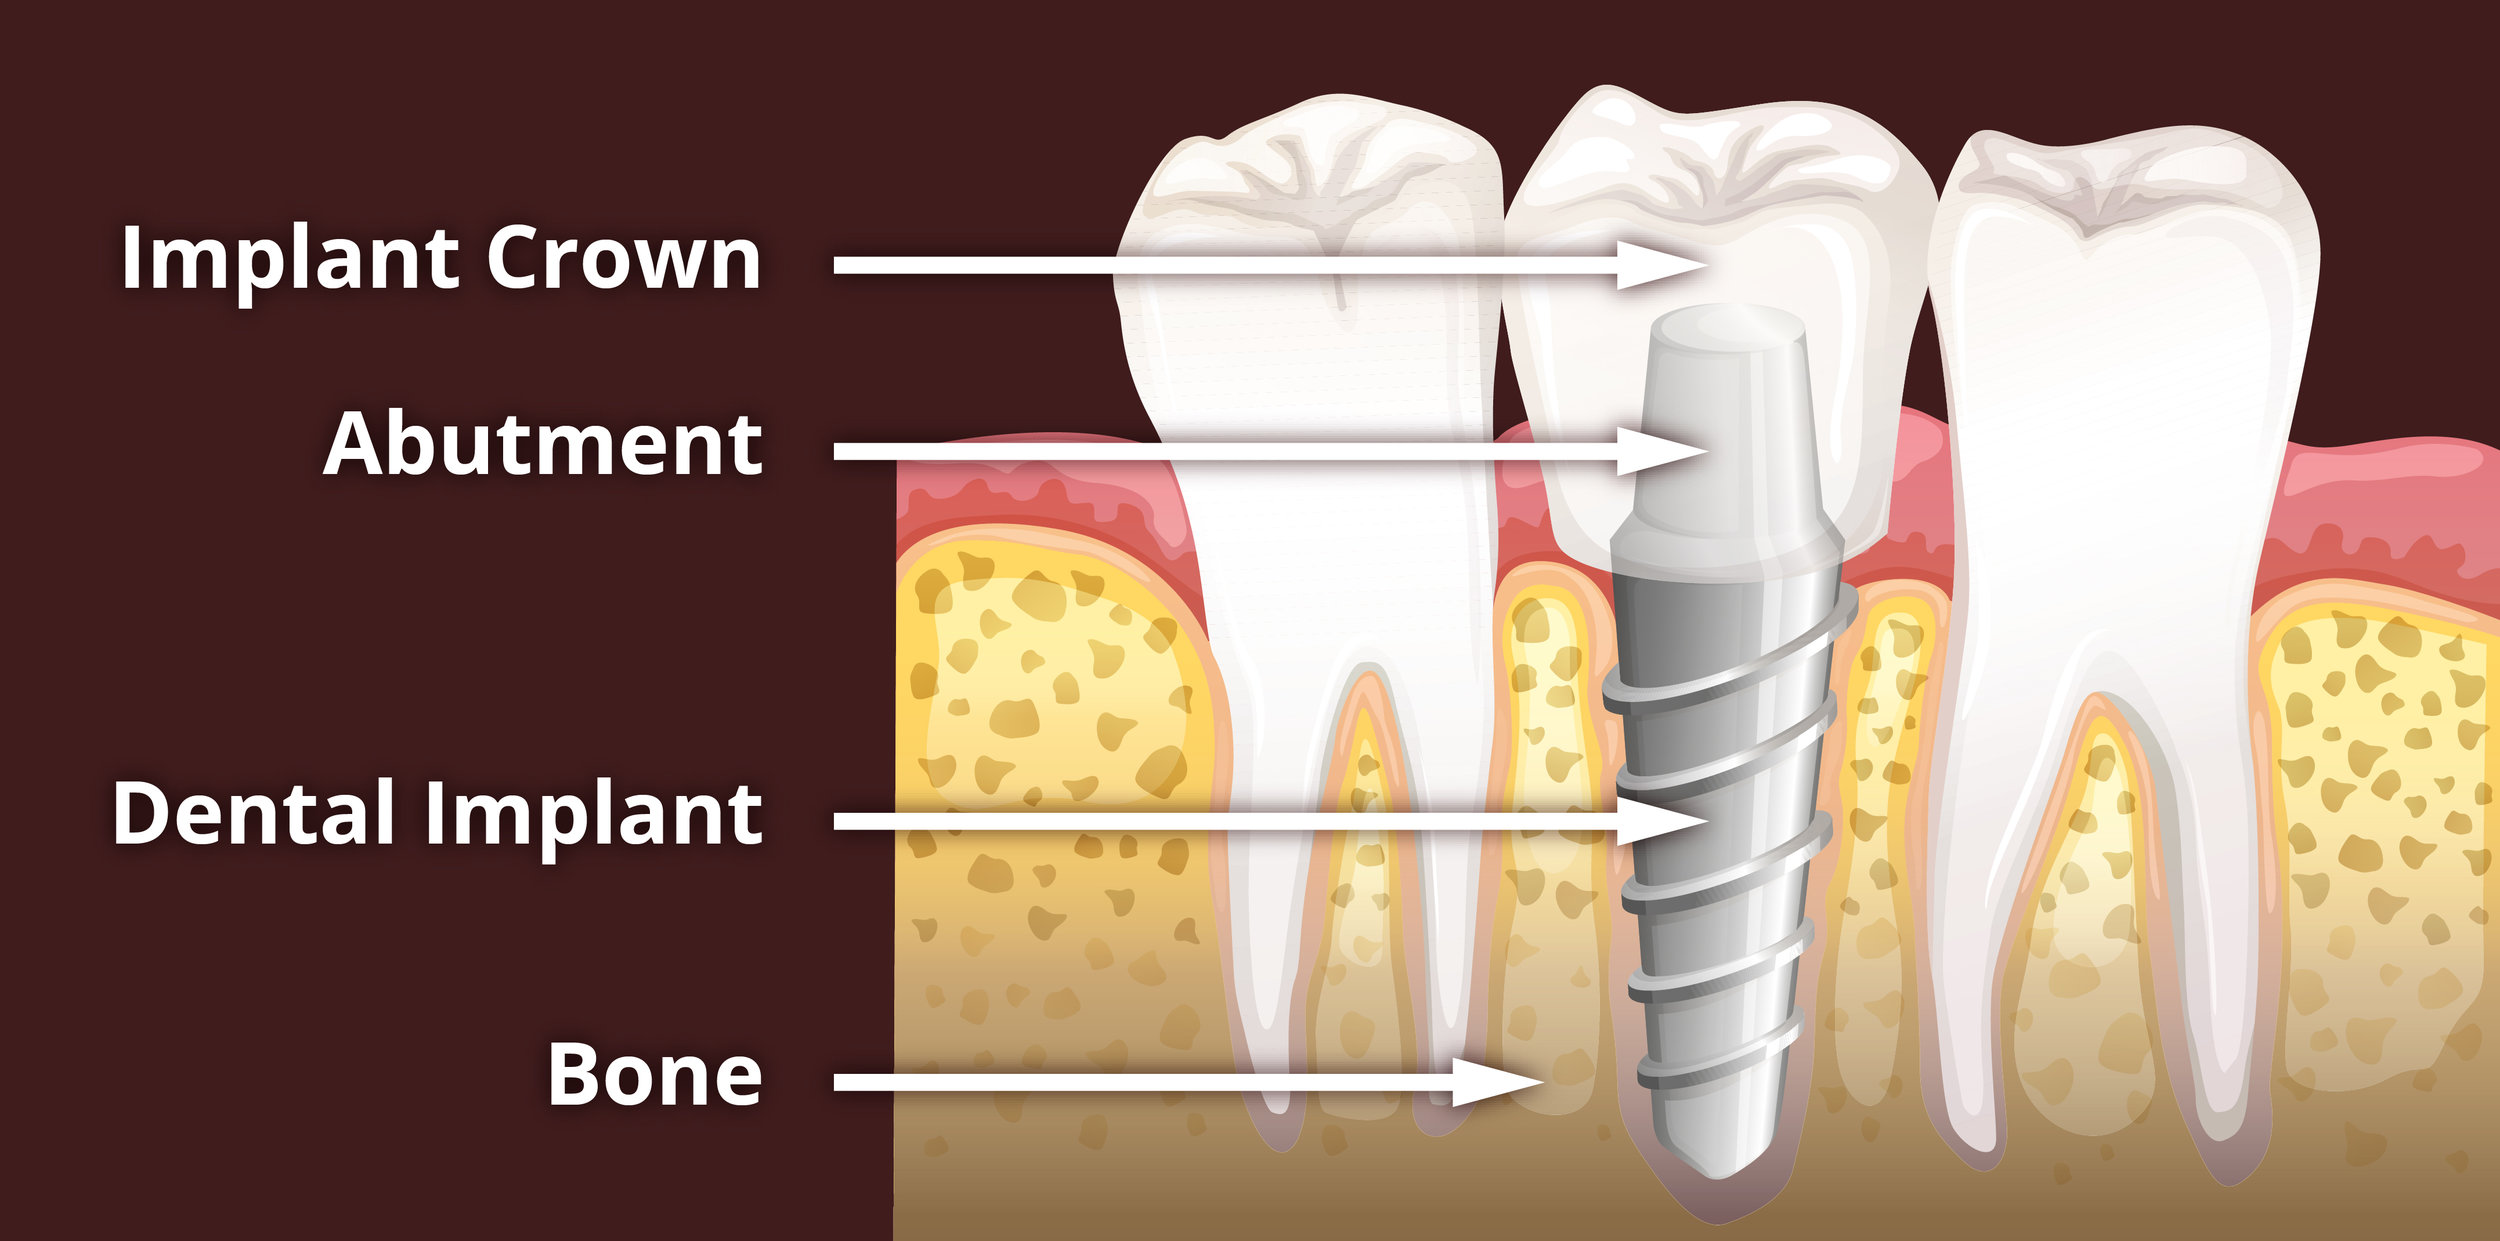 Dental-Implant-Anatomy-01.jpg